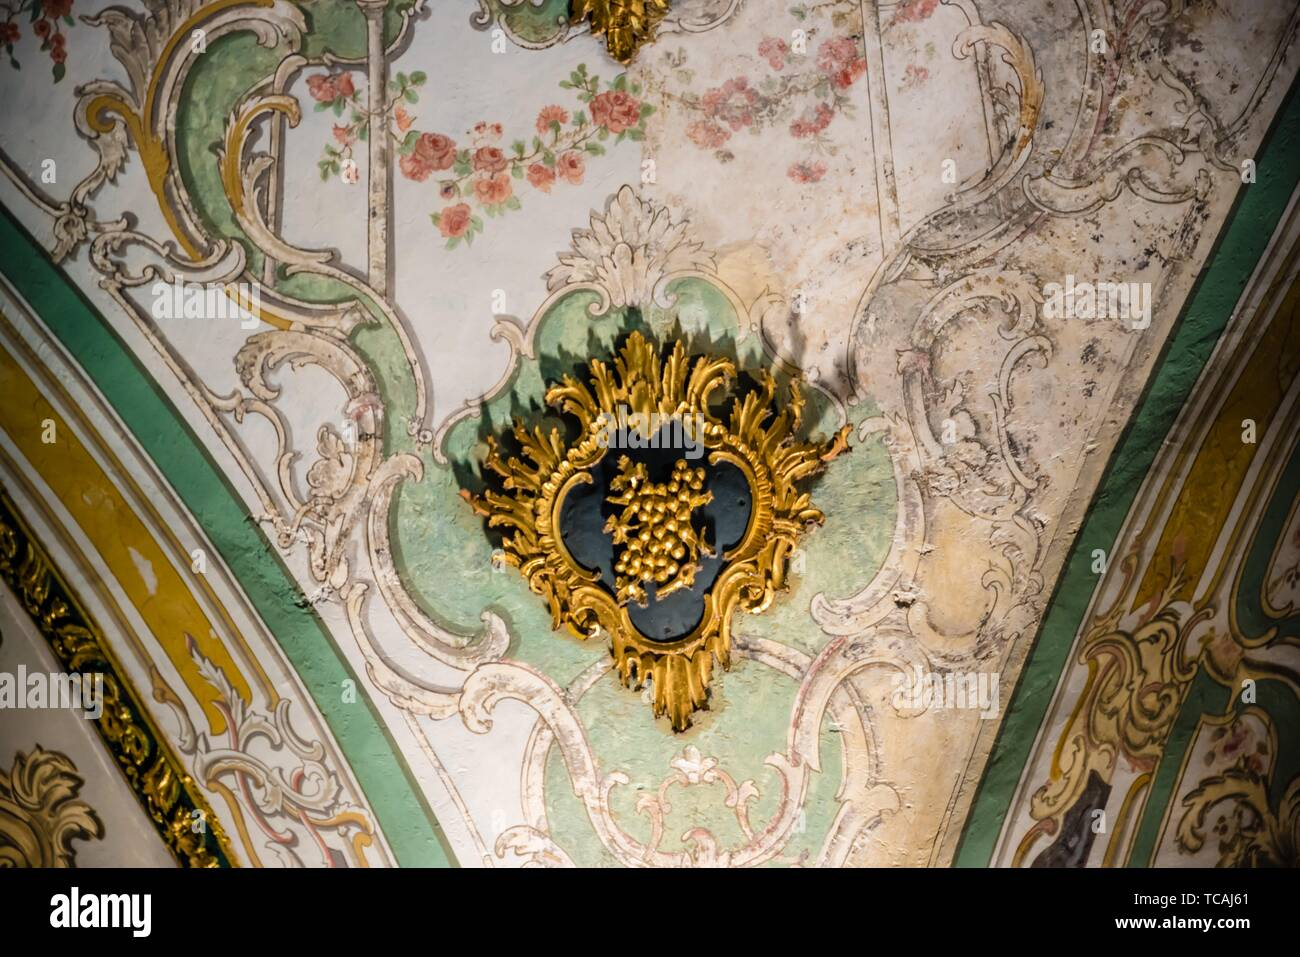 View of Ceiling of Circumcision Room at Topkapi Palace, a large museum destination,in Istanbul,Turkey. 11 April 2018. Stock Photo